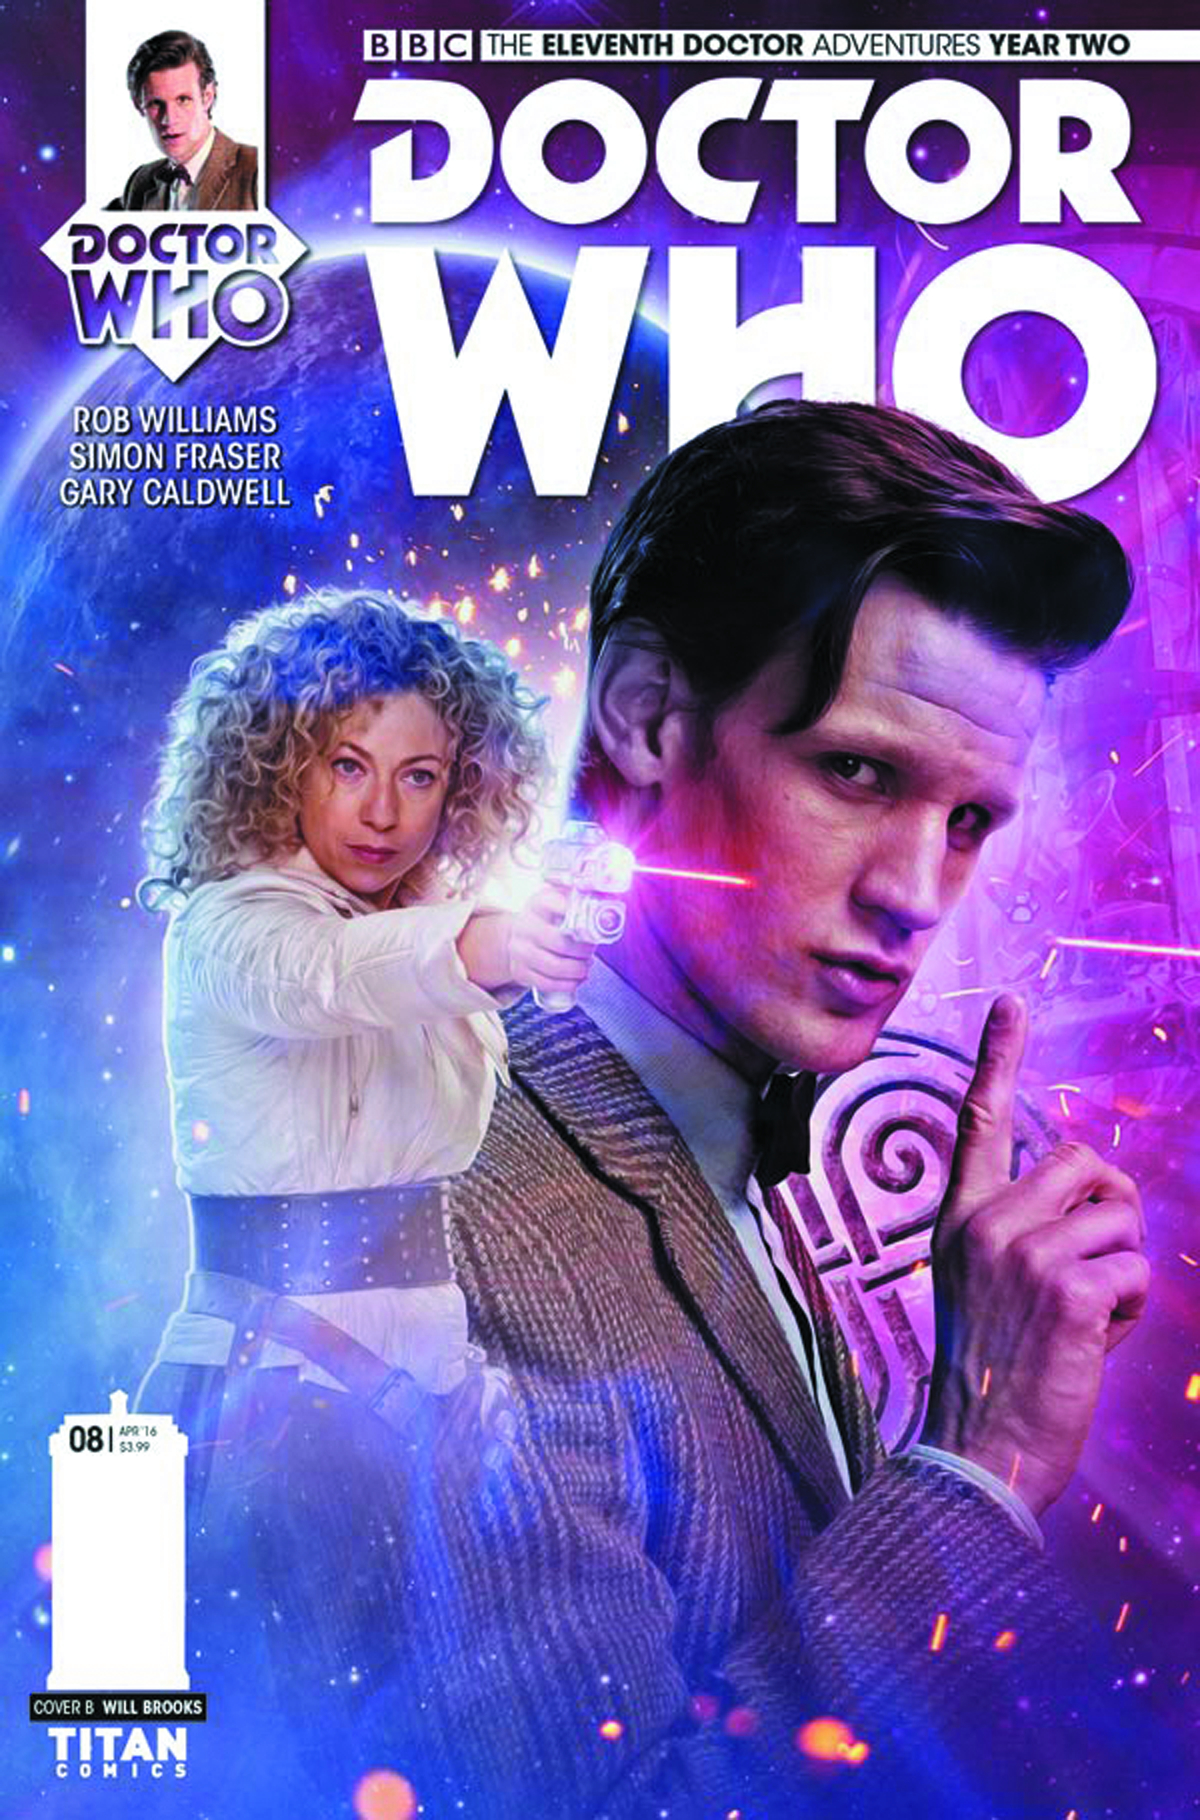 DOCTOR WHO 11TH YEAR TWO #8 CVR B PHOTO